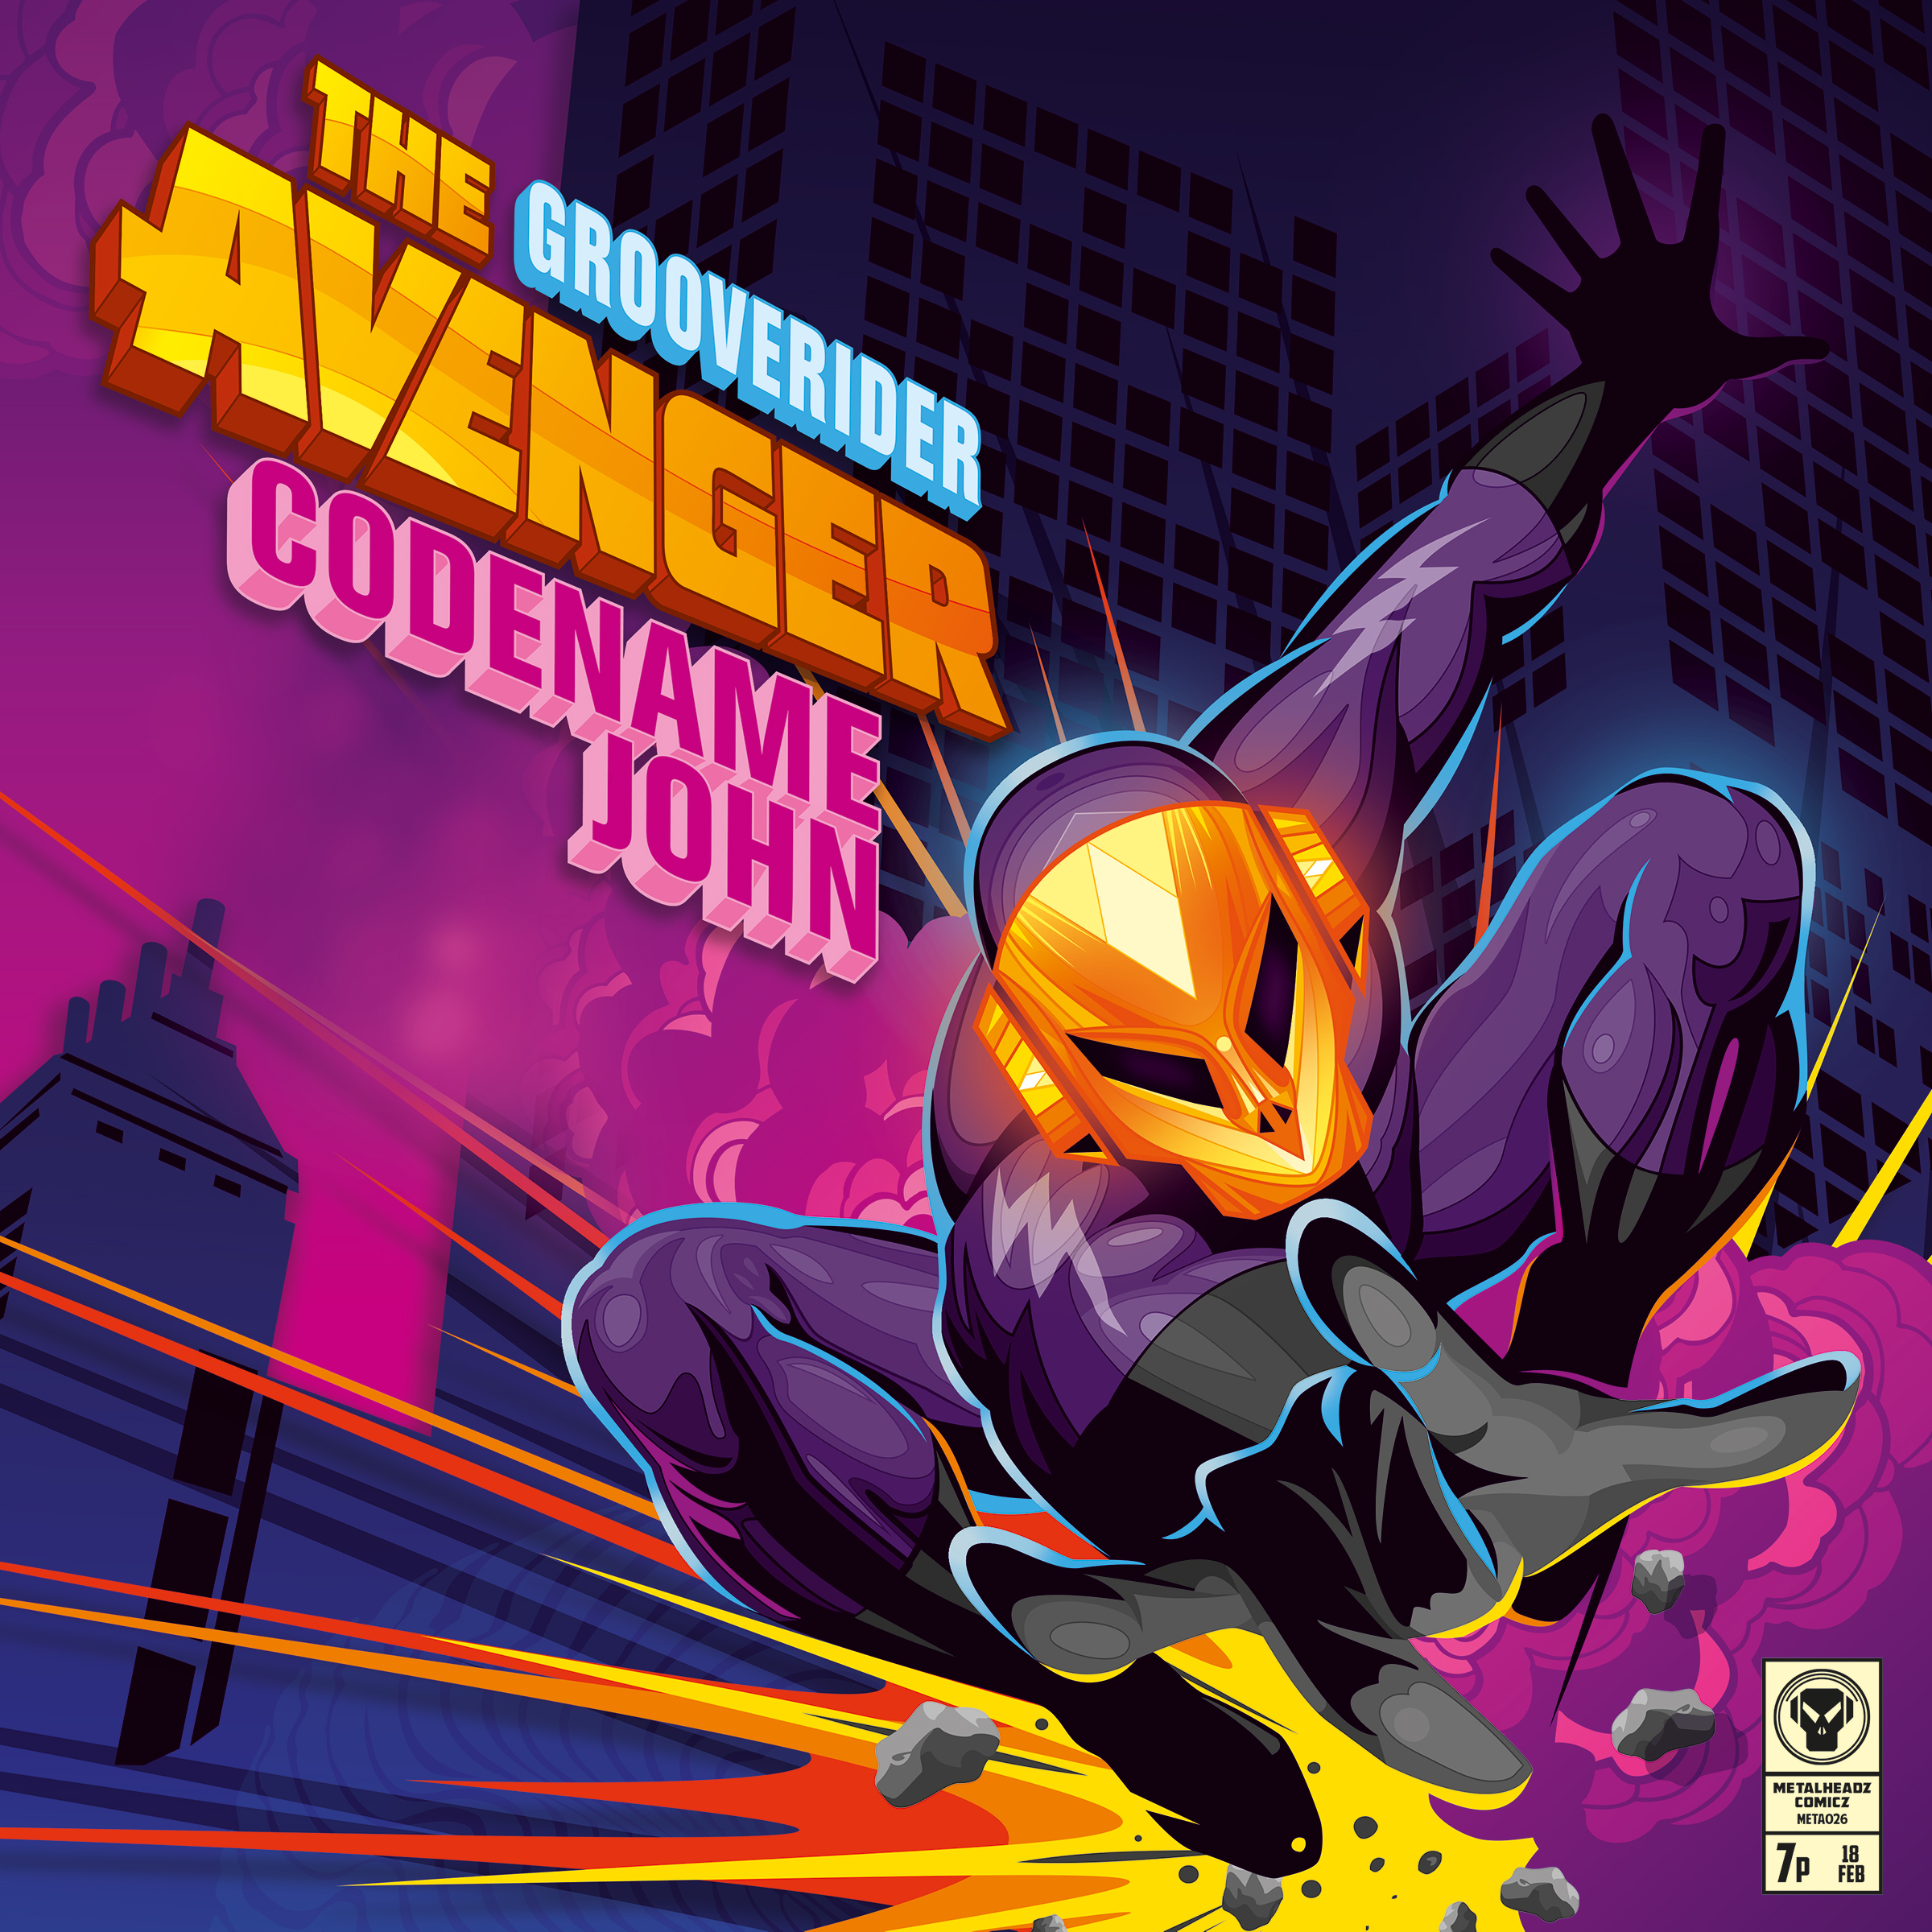 Grooverider/THE AVENGER 12""